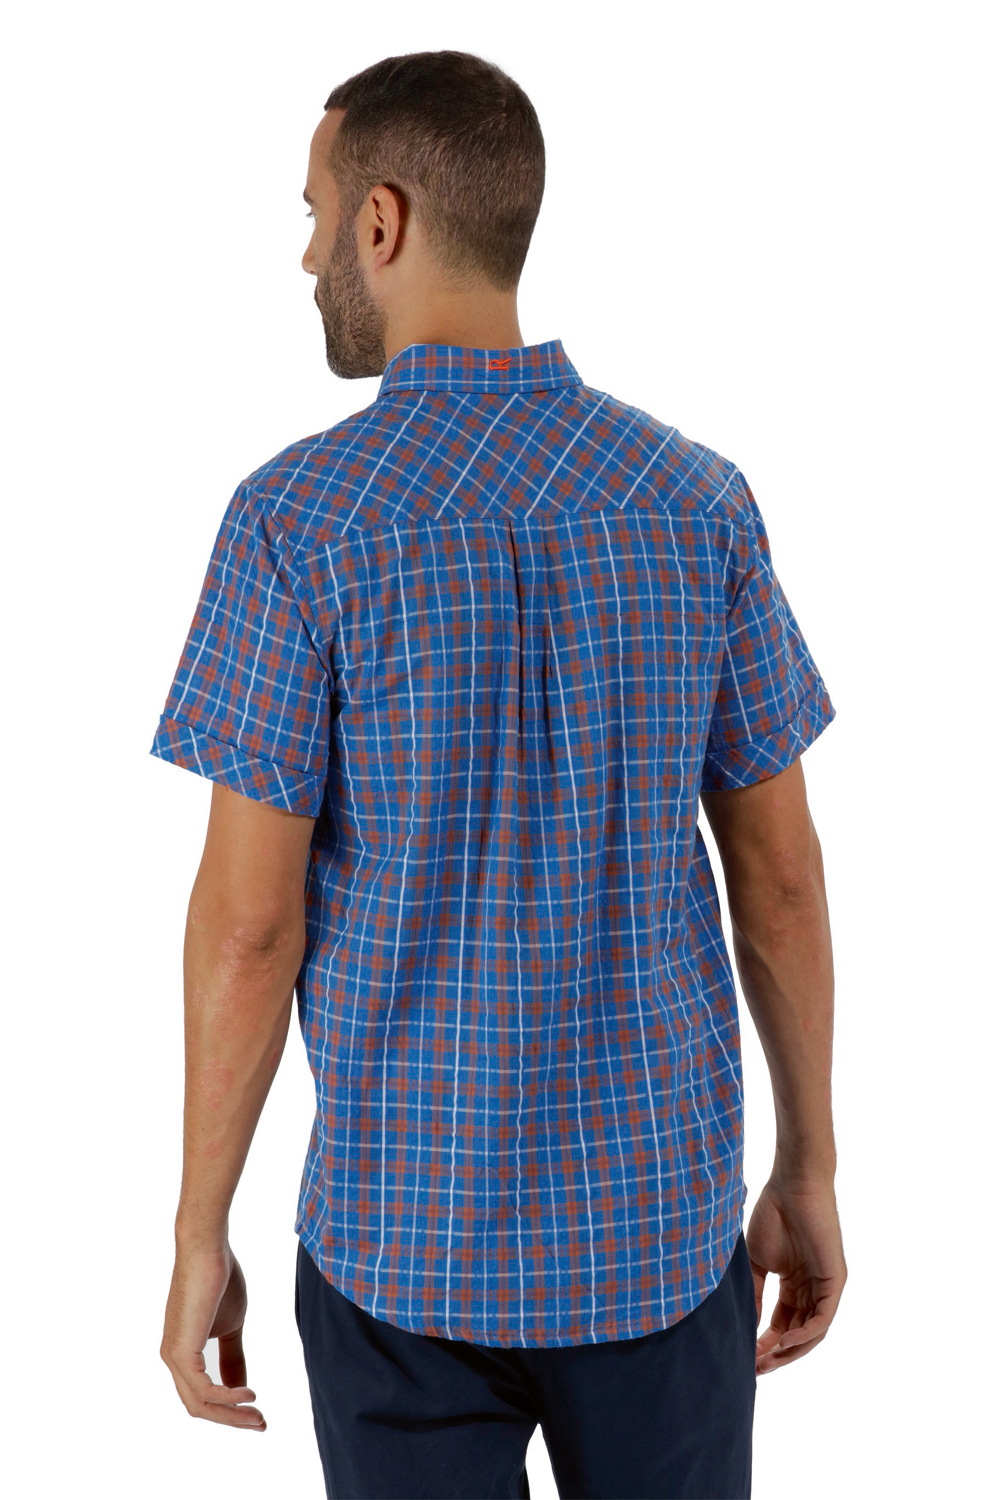 Regatta-Mens-Deakin-II-Coolweave-Cotton-Short-Sleeved-Summer-Check-Shirt-RRP-50 thumbnail 29